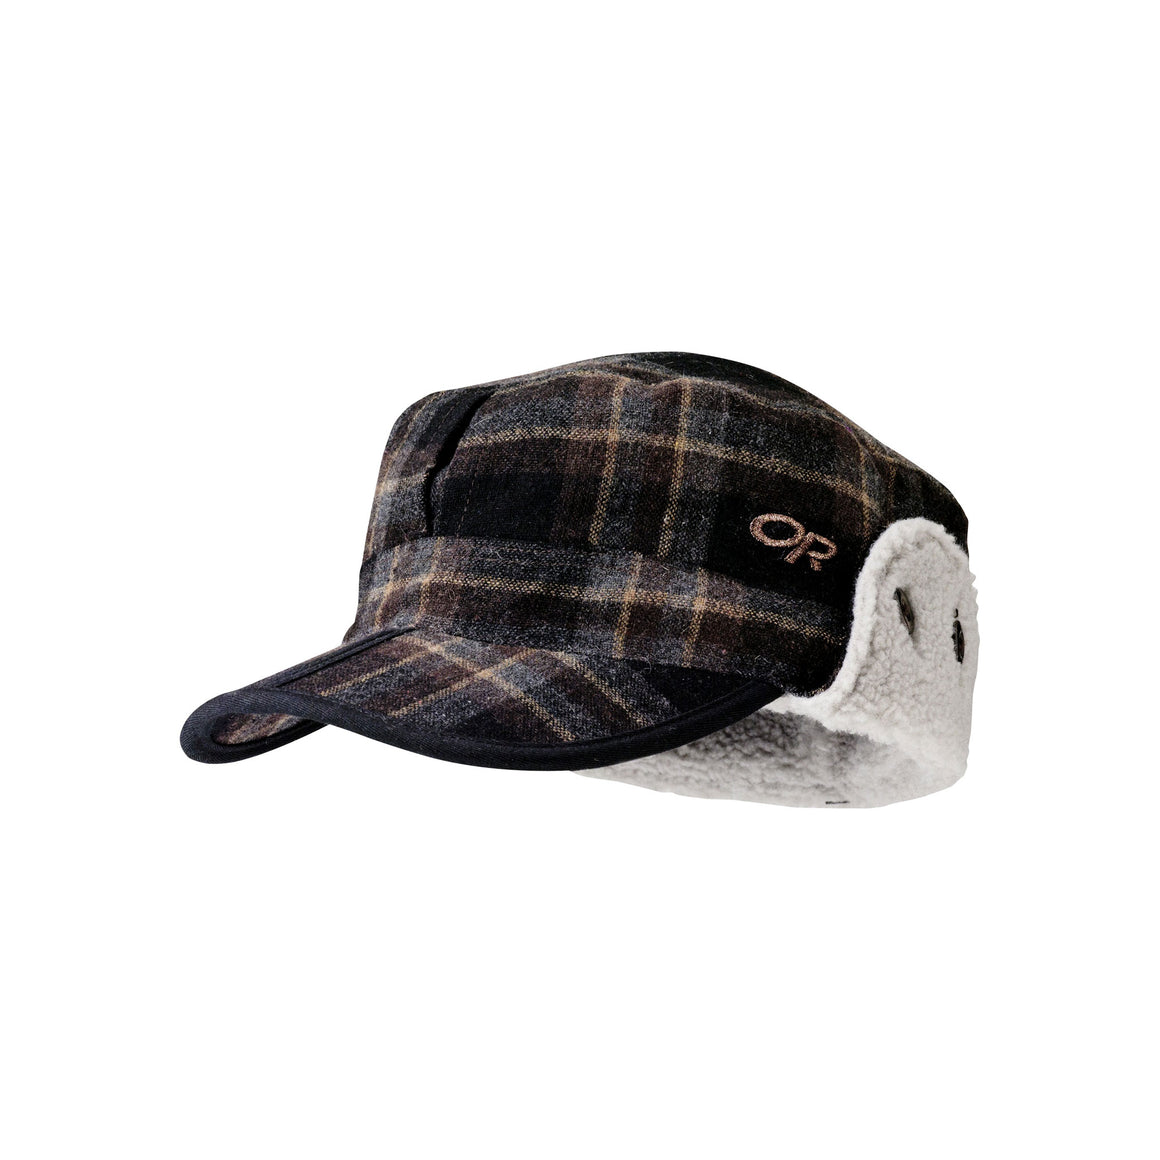 Outdoor Research Yukon Cap - Unisex